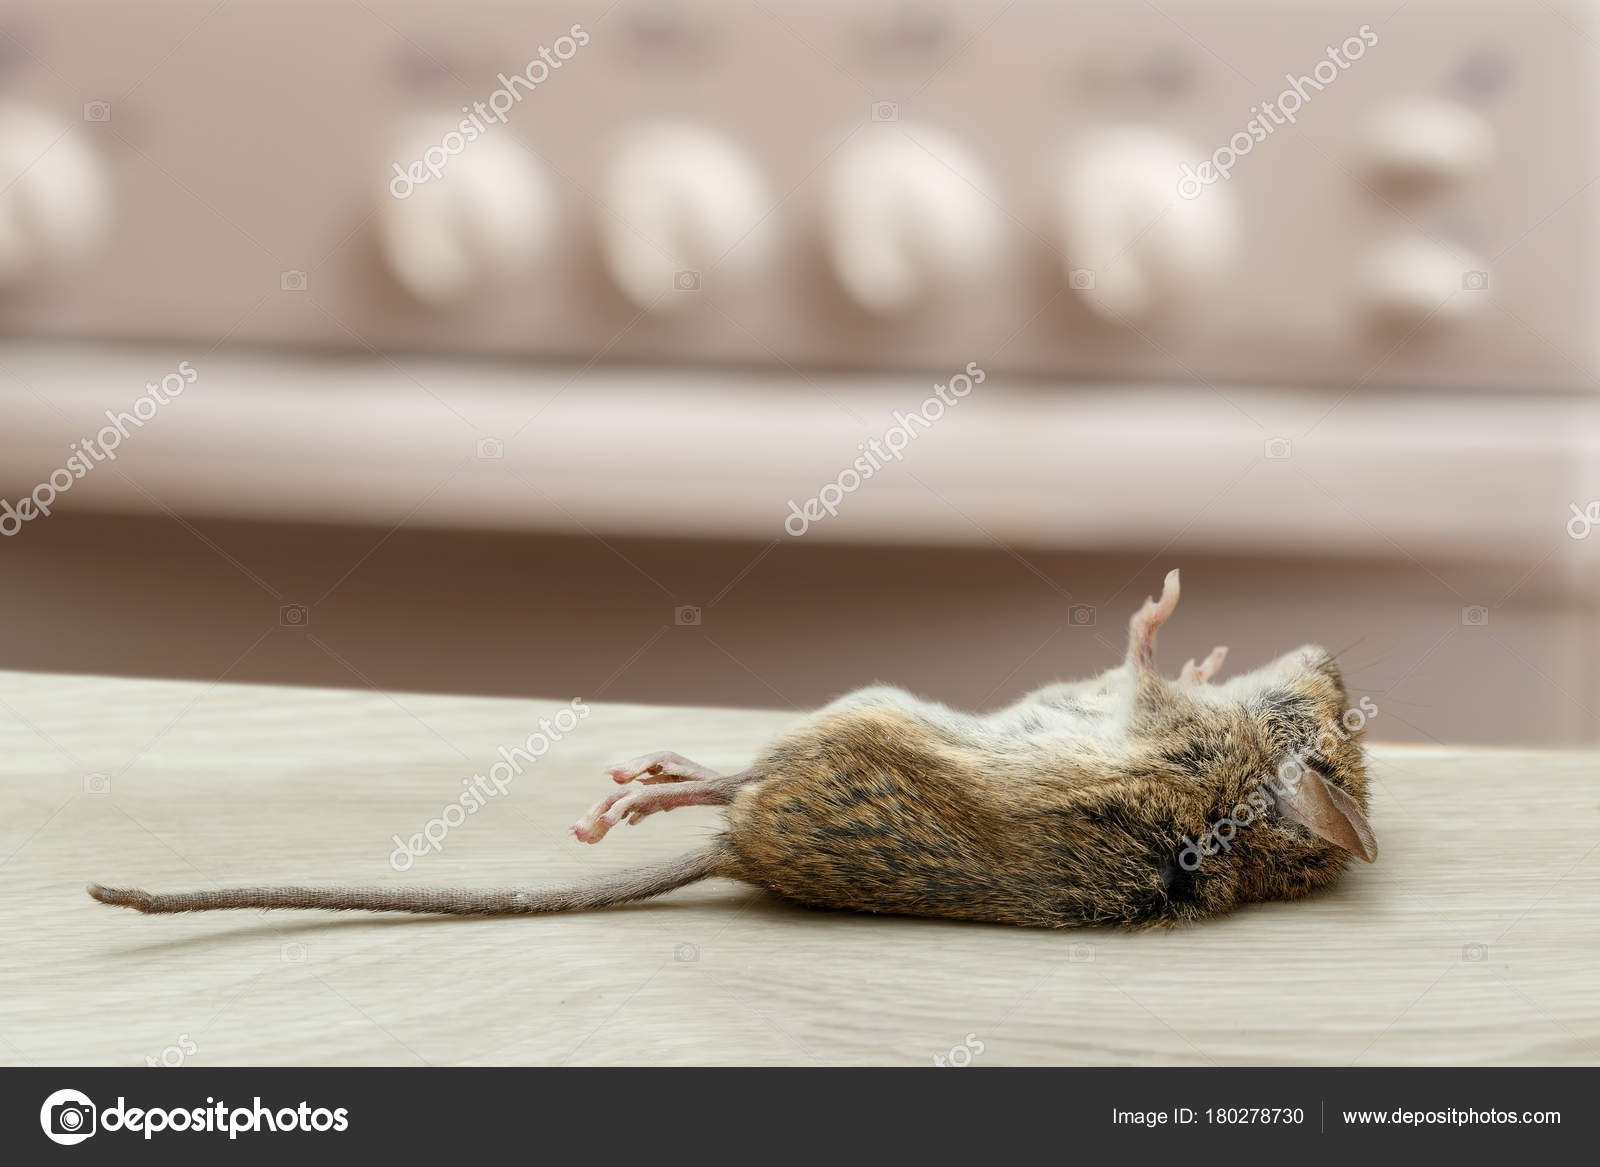 Dead Mouse Apartment Kitchen High Rise Buildings Fight Rodent ...